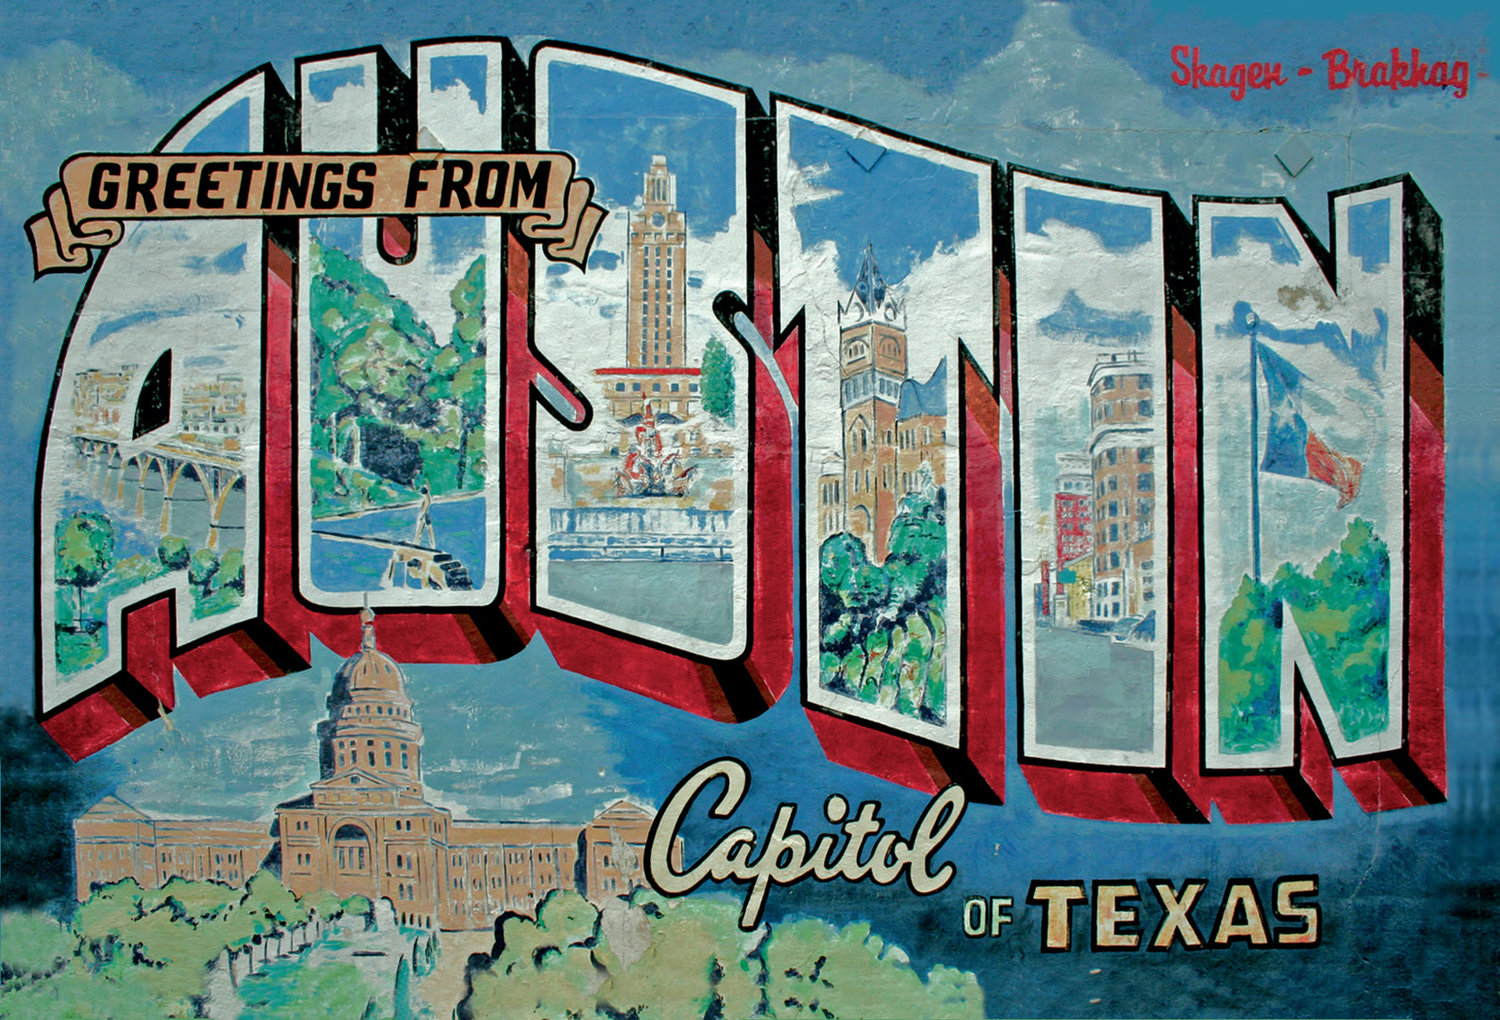 Greetings from austin austin blanks greetings from austin m4hsunfo